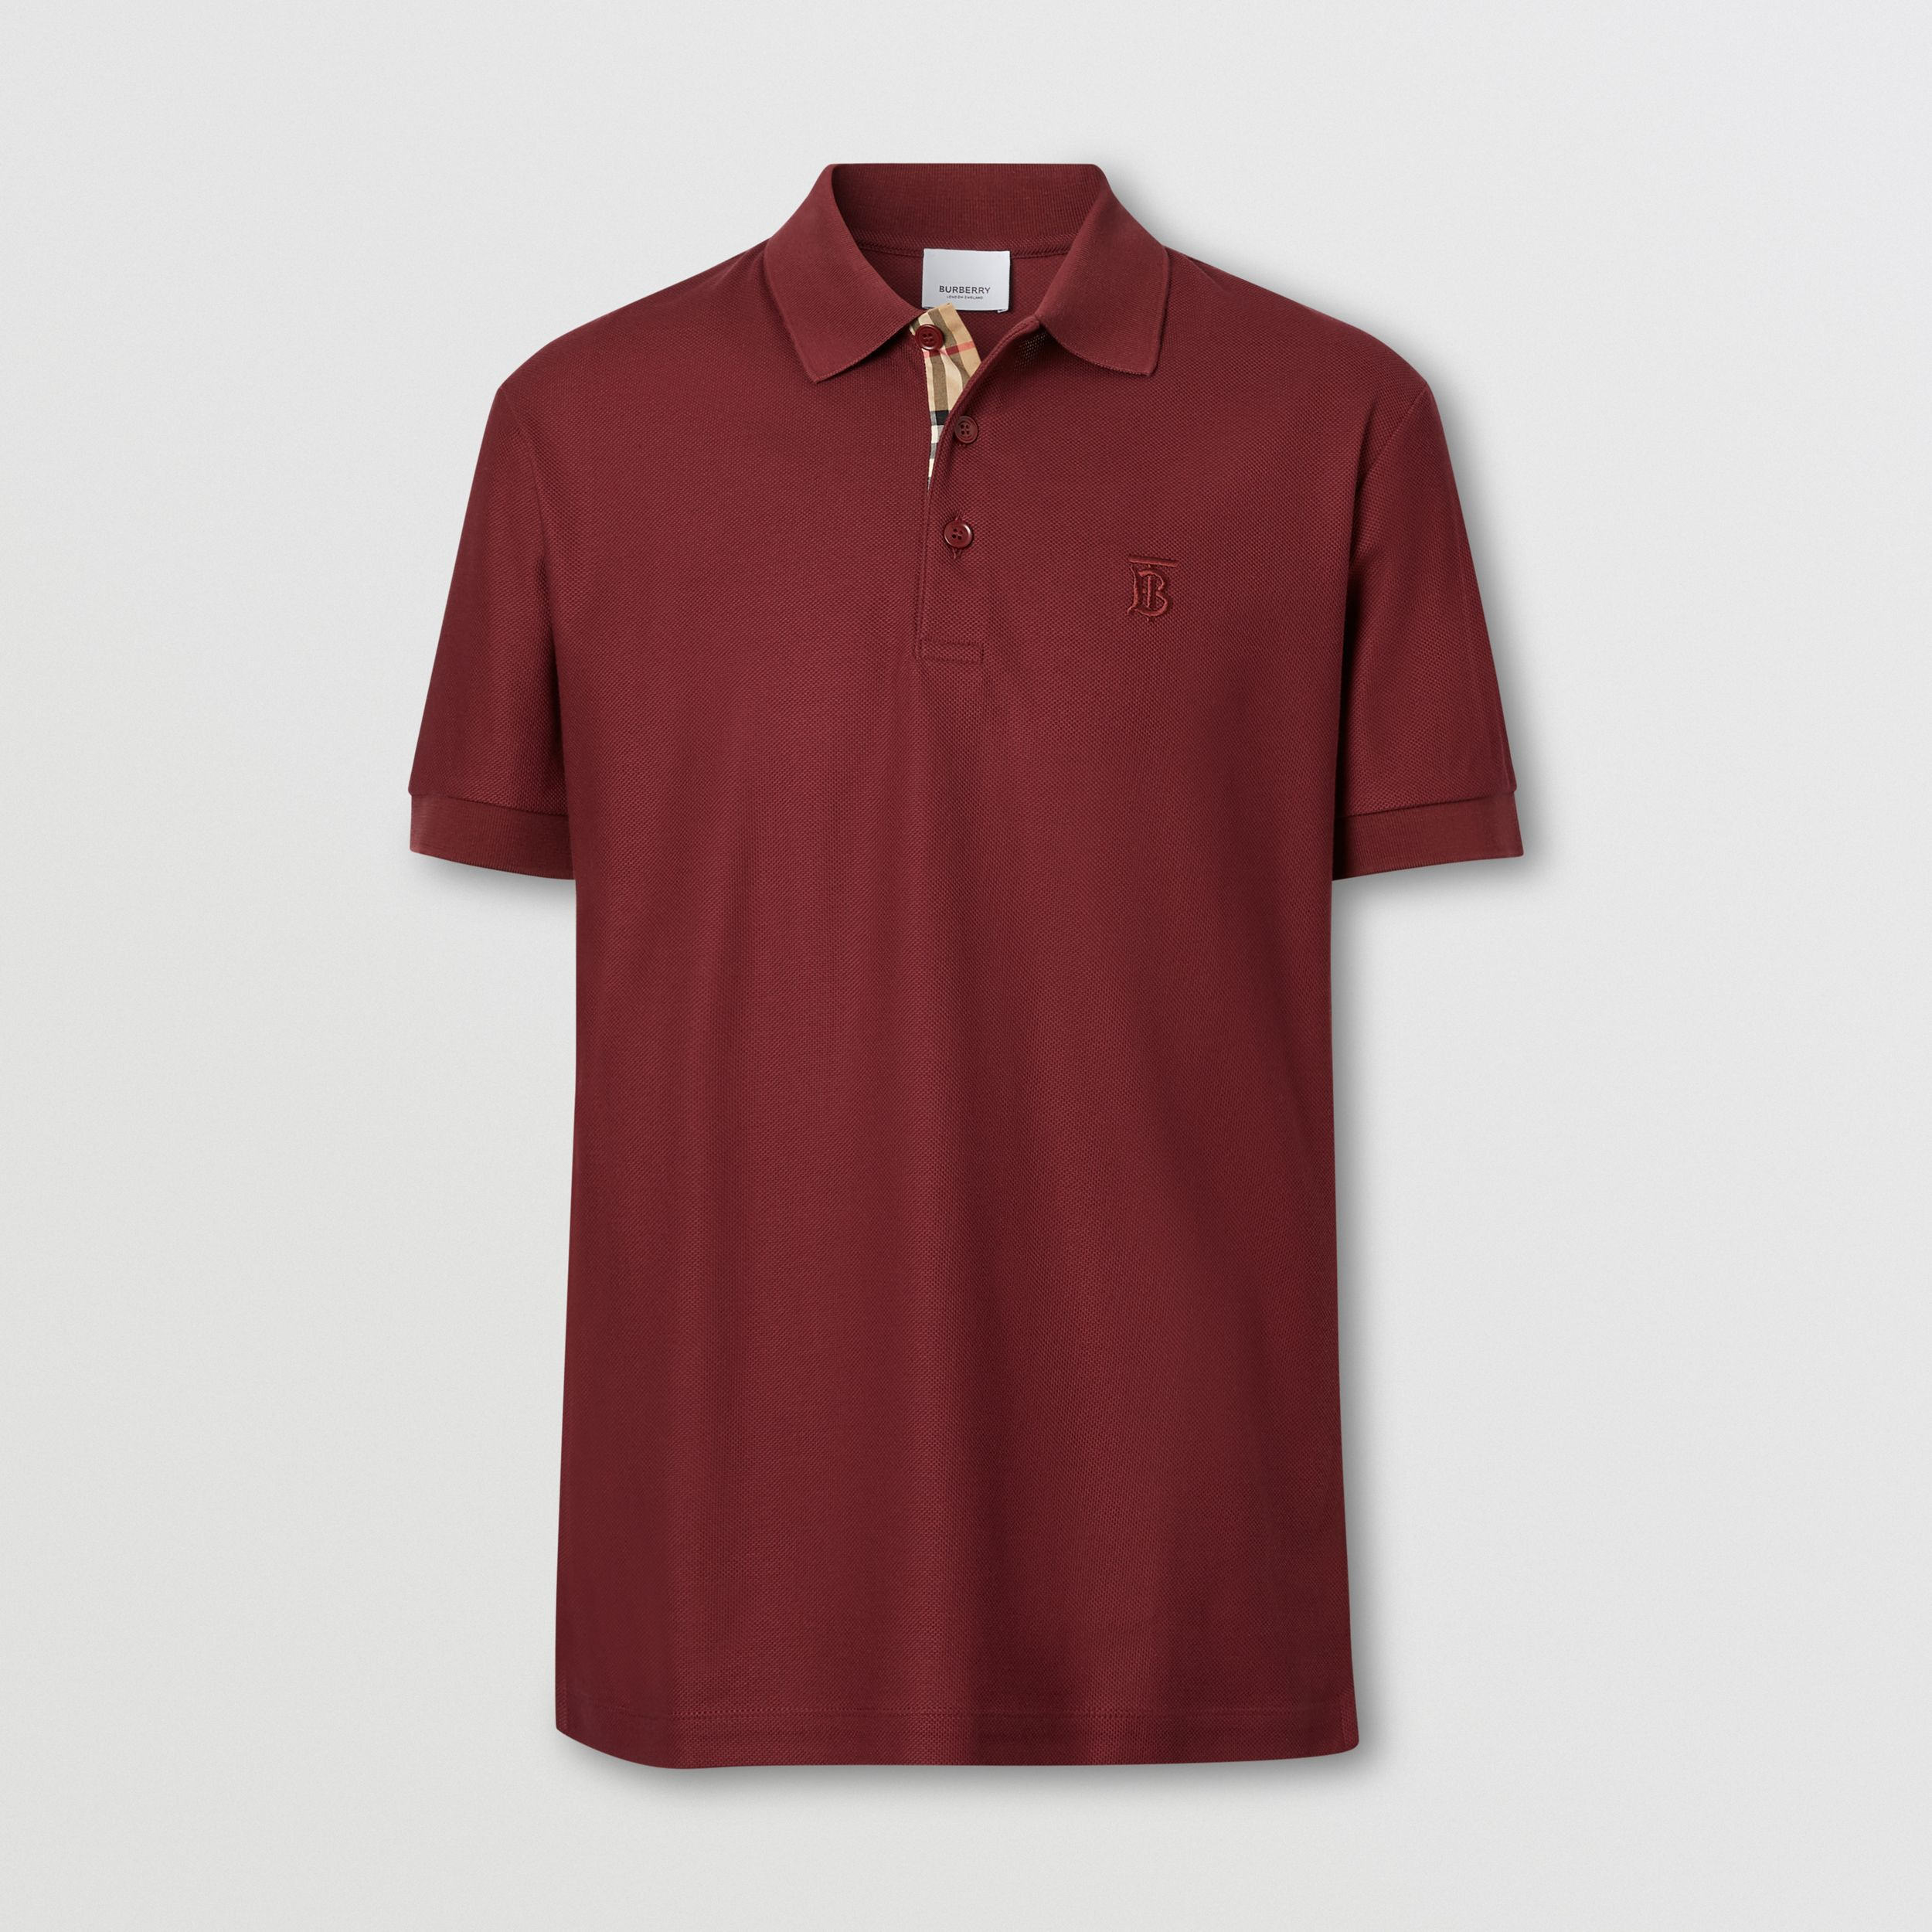 Monogram Motif Cotton Piqué Polo Shirt in Garnet - Men | Burberry - 4